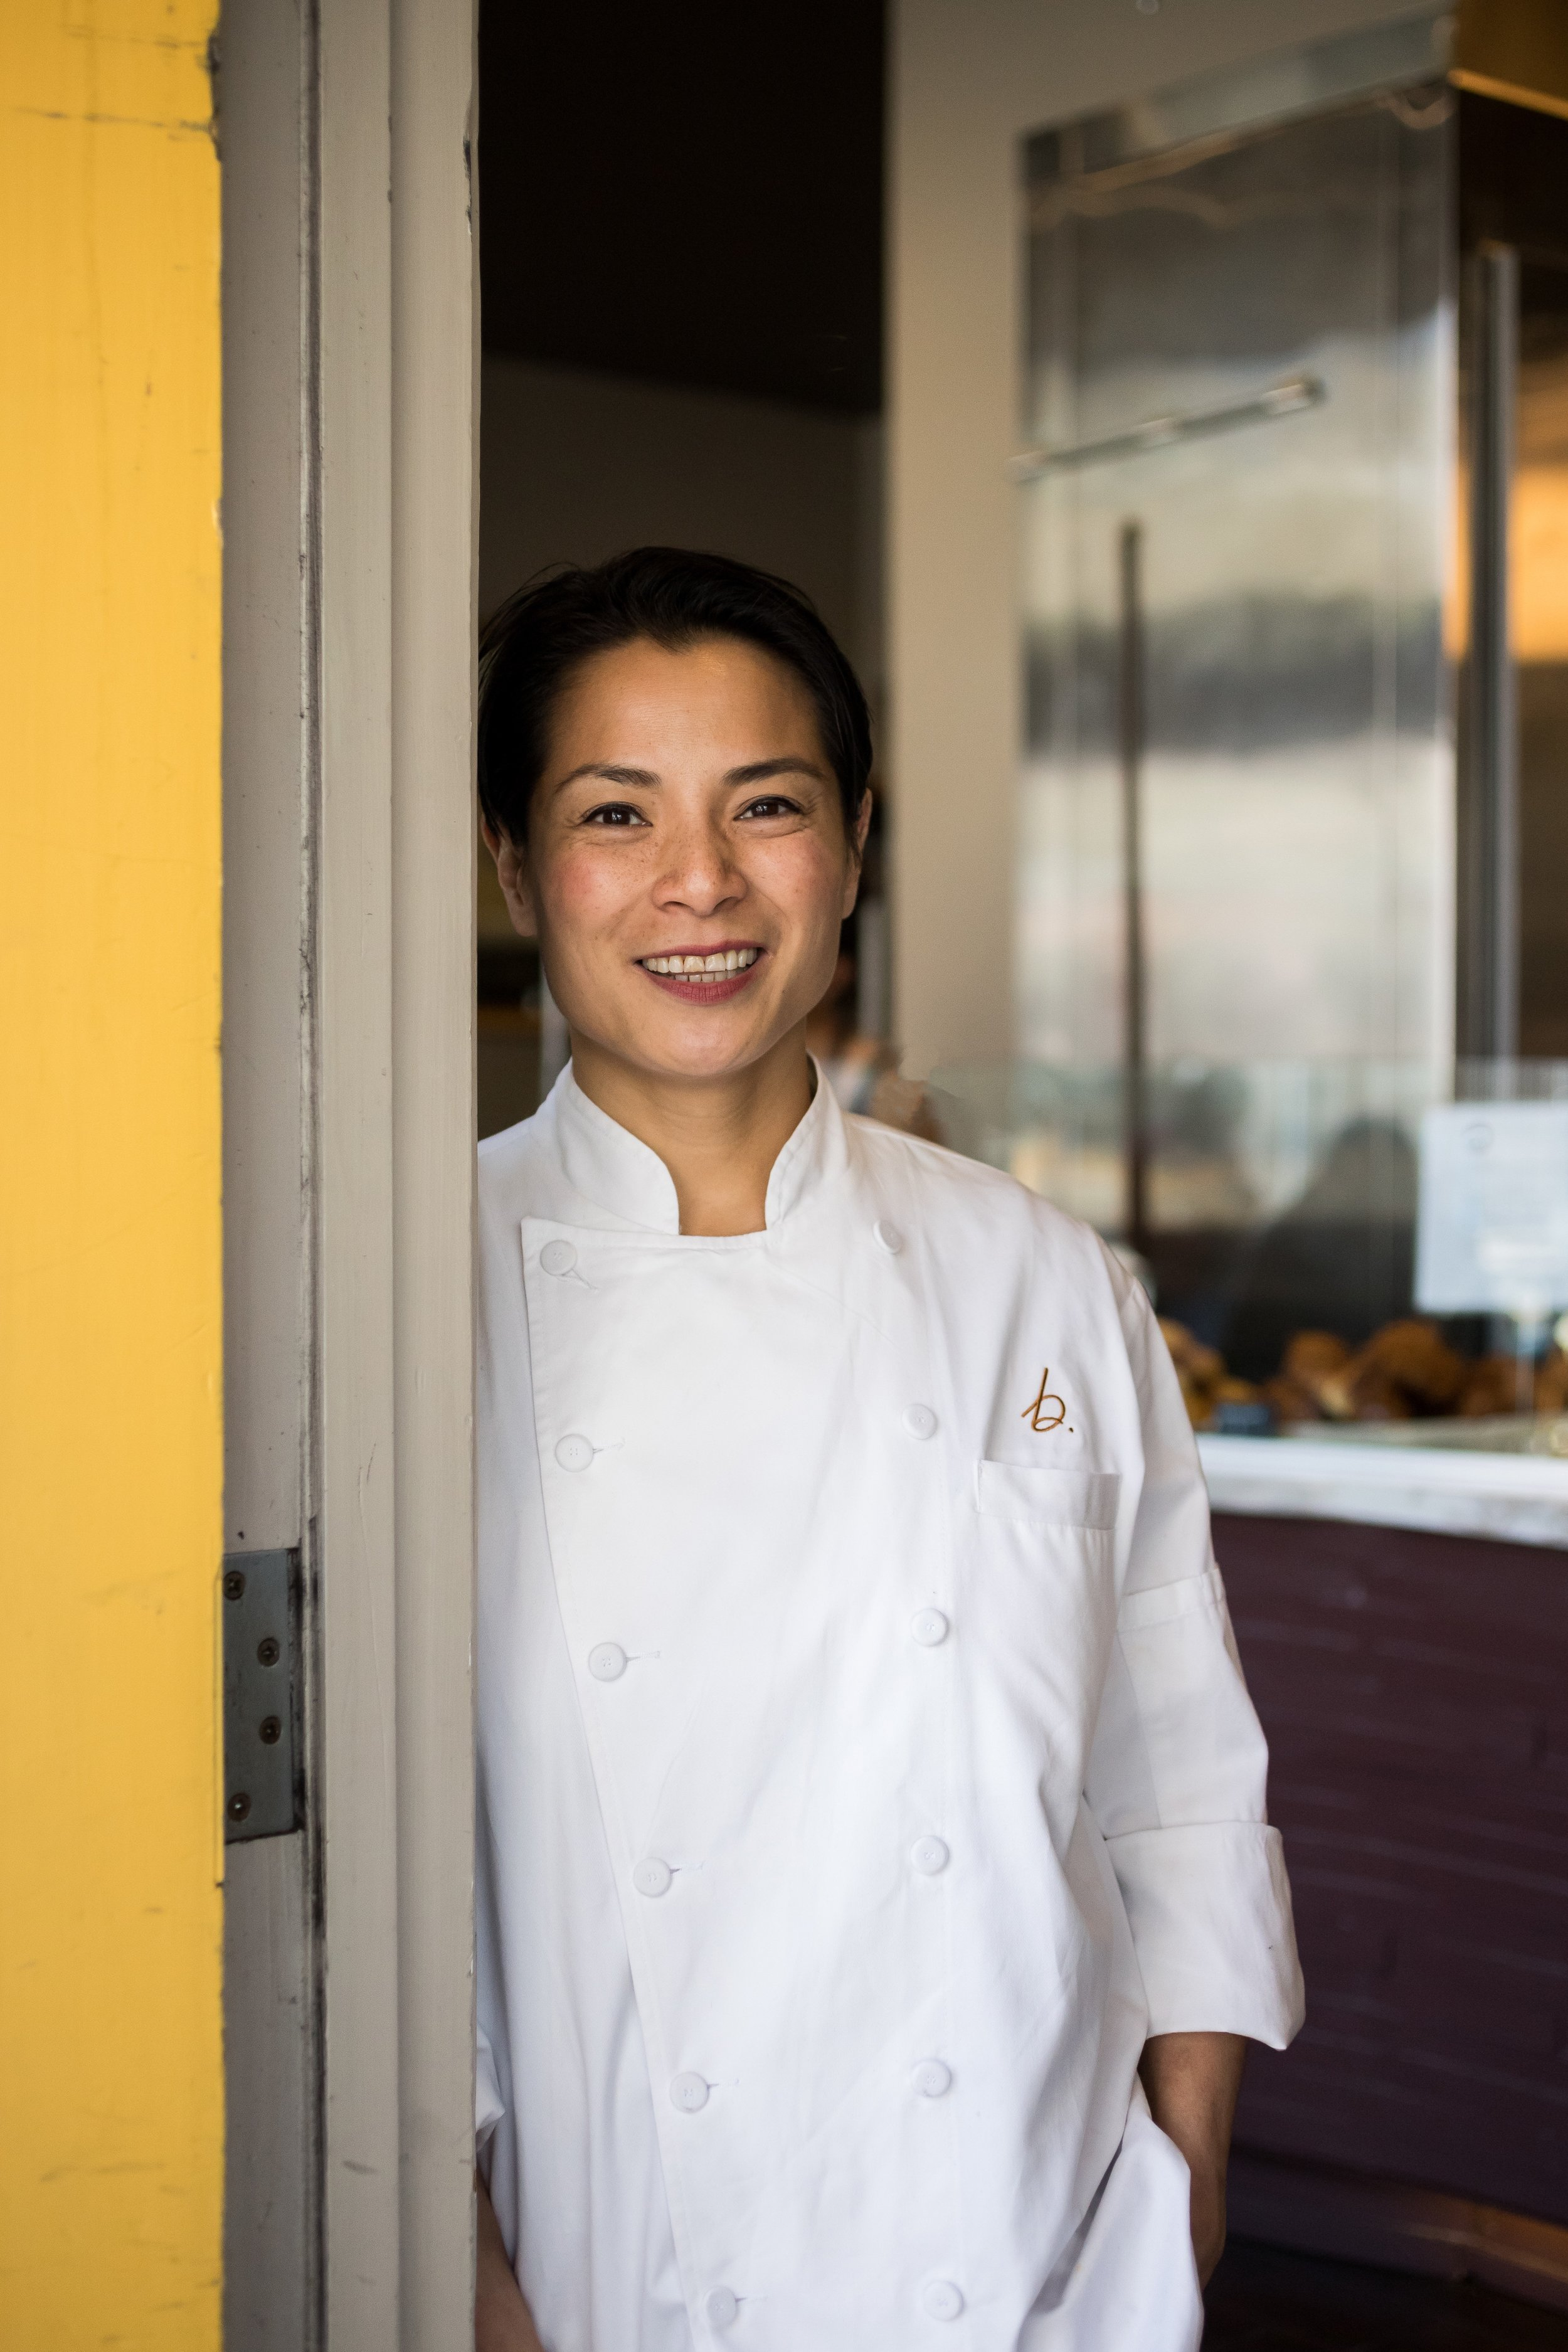 Belinda Leong ofB. Patisserie - Award-winning Pastry Chef and Owner